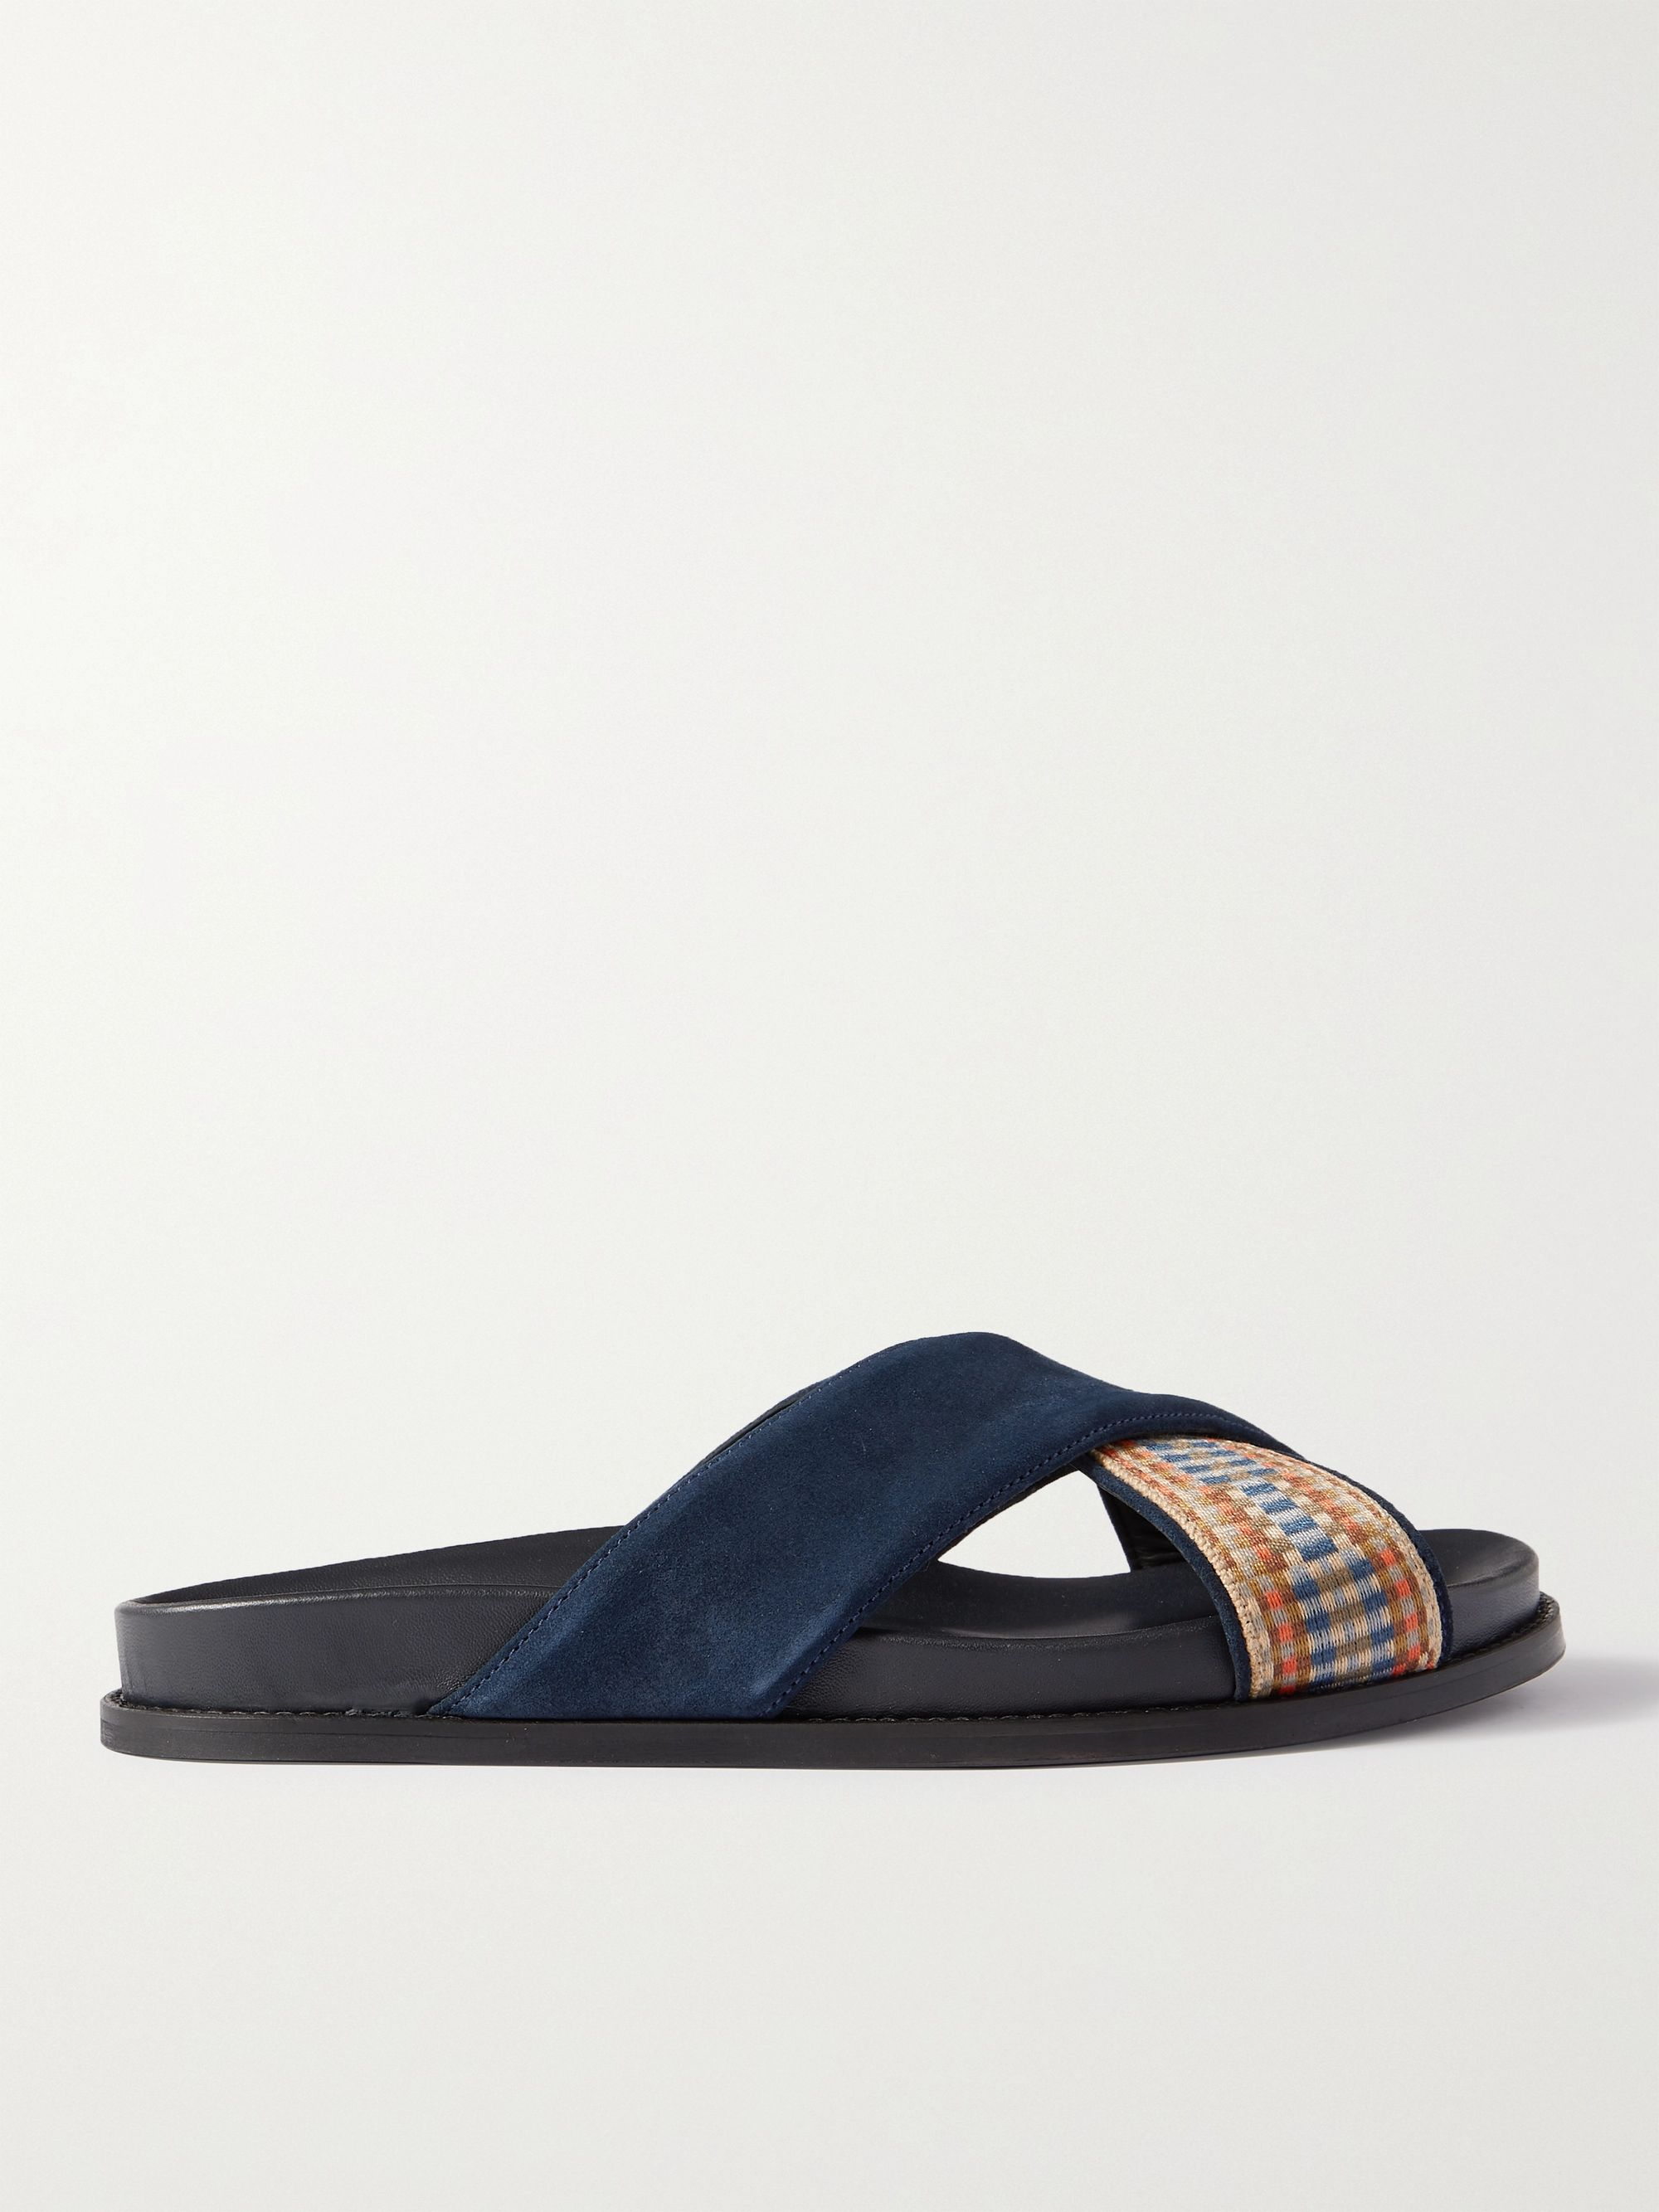 MR P. David Suede and Webbing Sandals,Blue